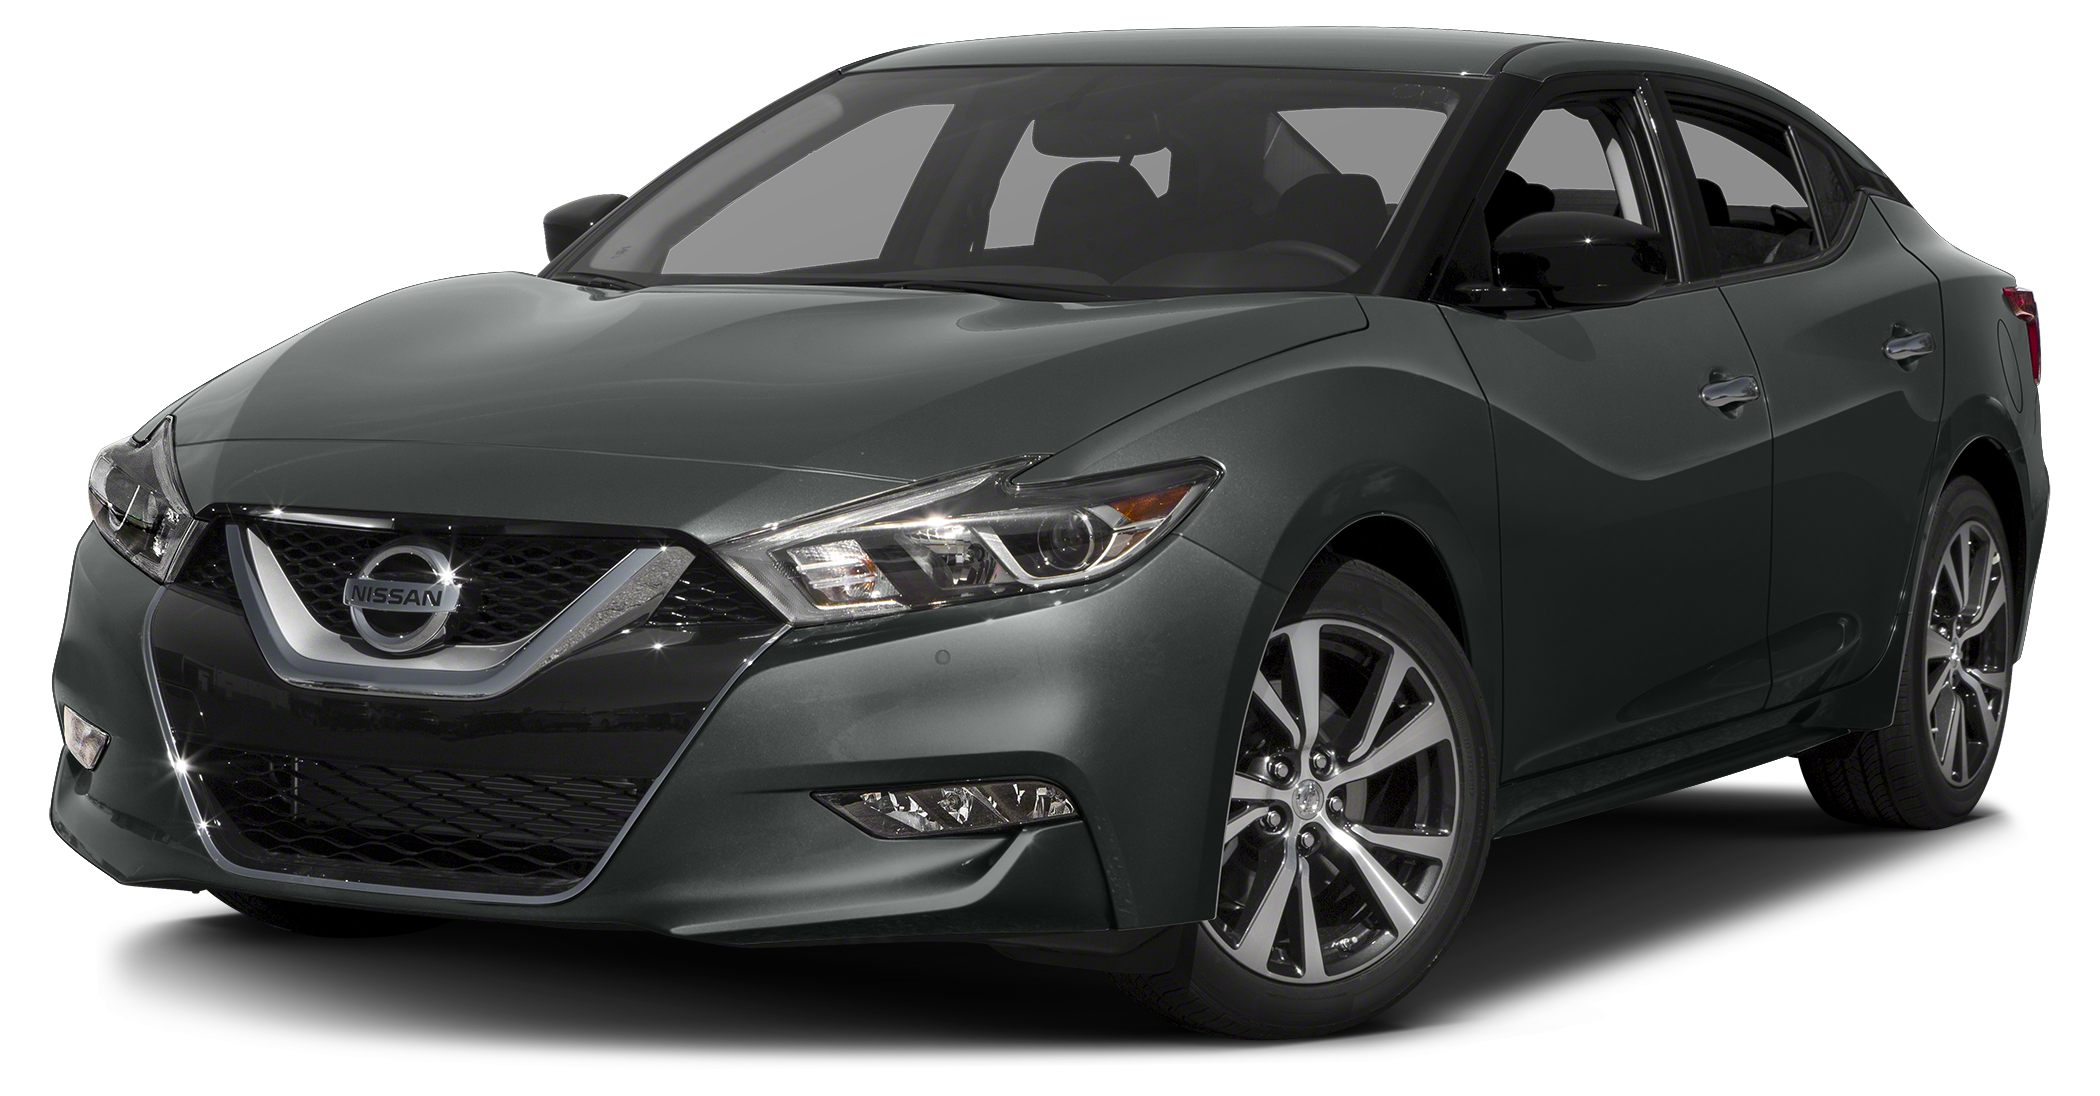 2017 Nissan Maxima 35 S Here it is Hurry and take advantage now Check out this 2017 A sporty s